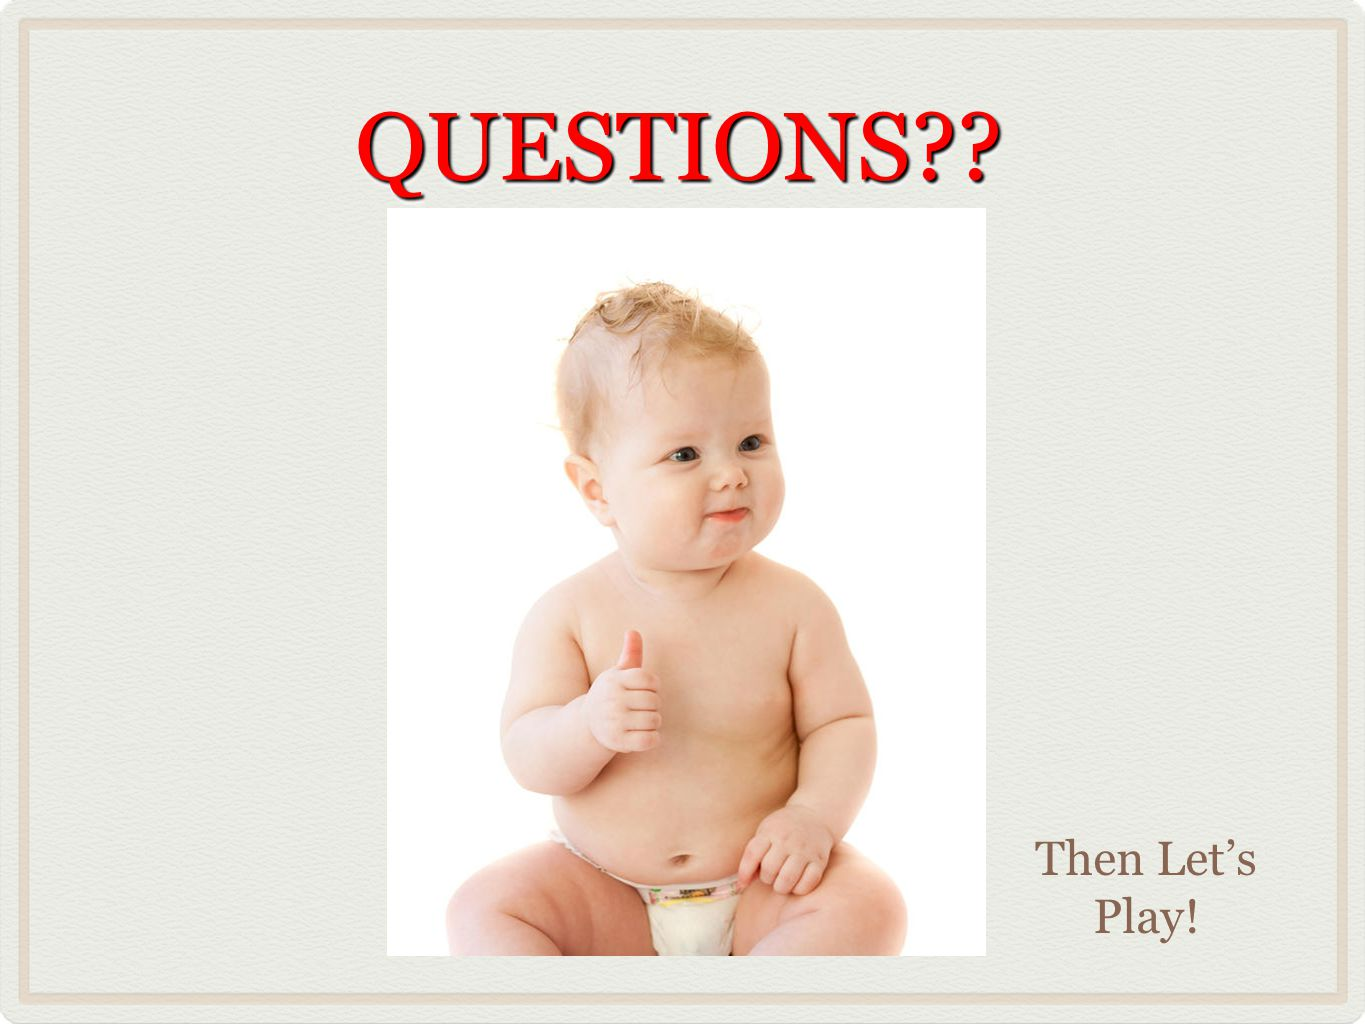 QUESTIONS Then Let's Play!